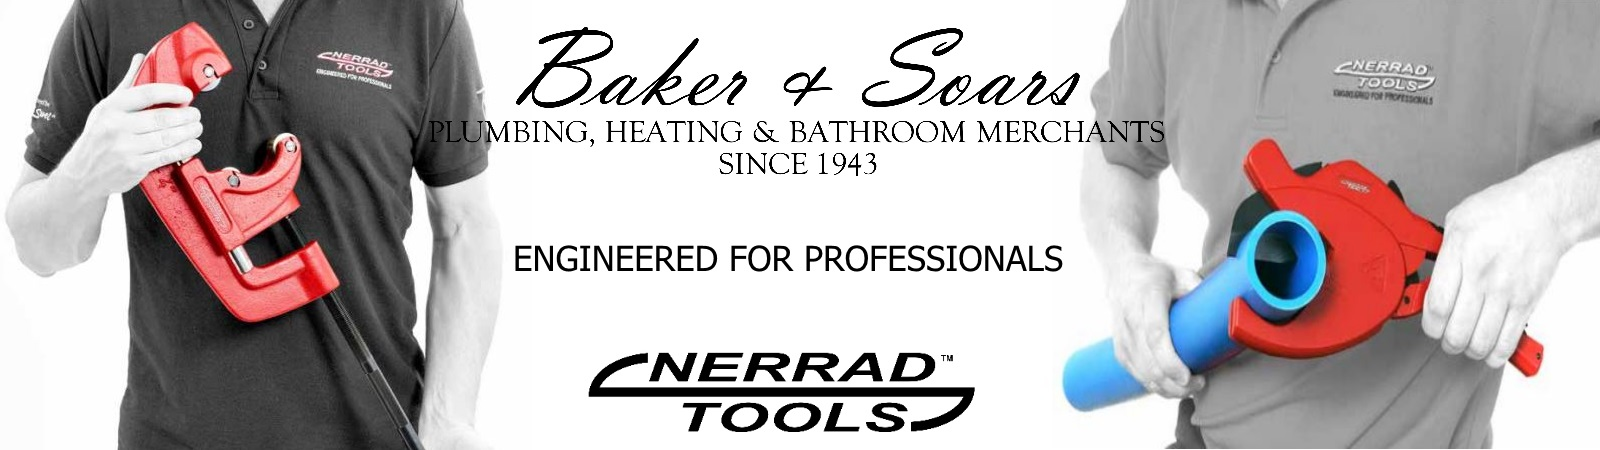 nerrad tools at baker and soars